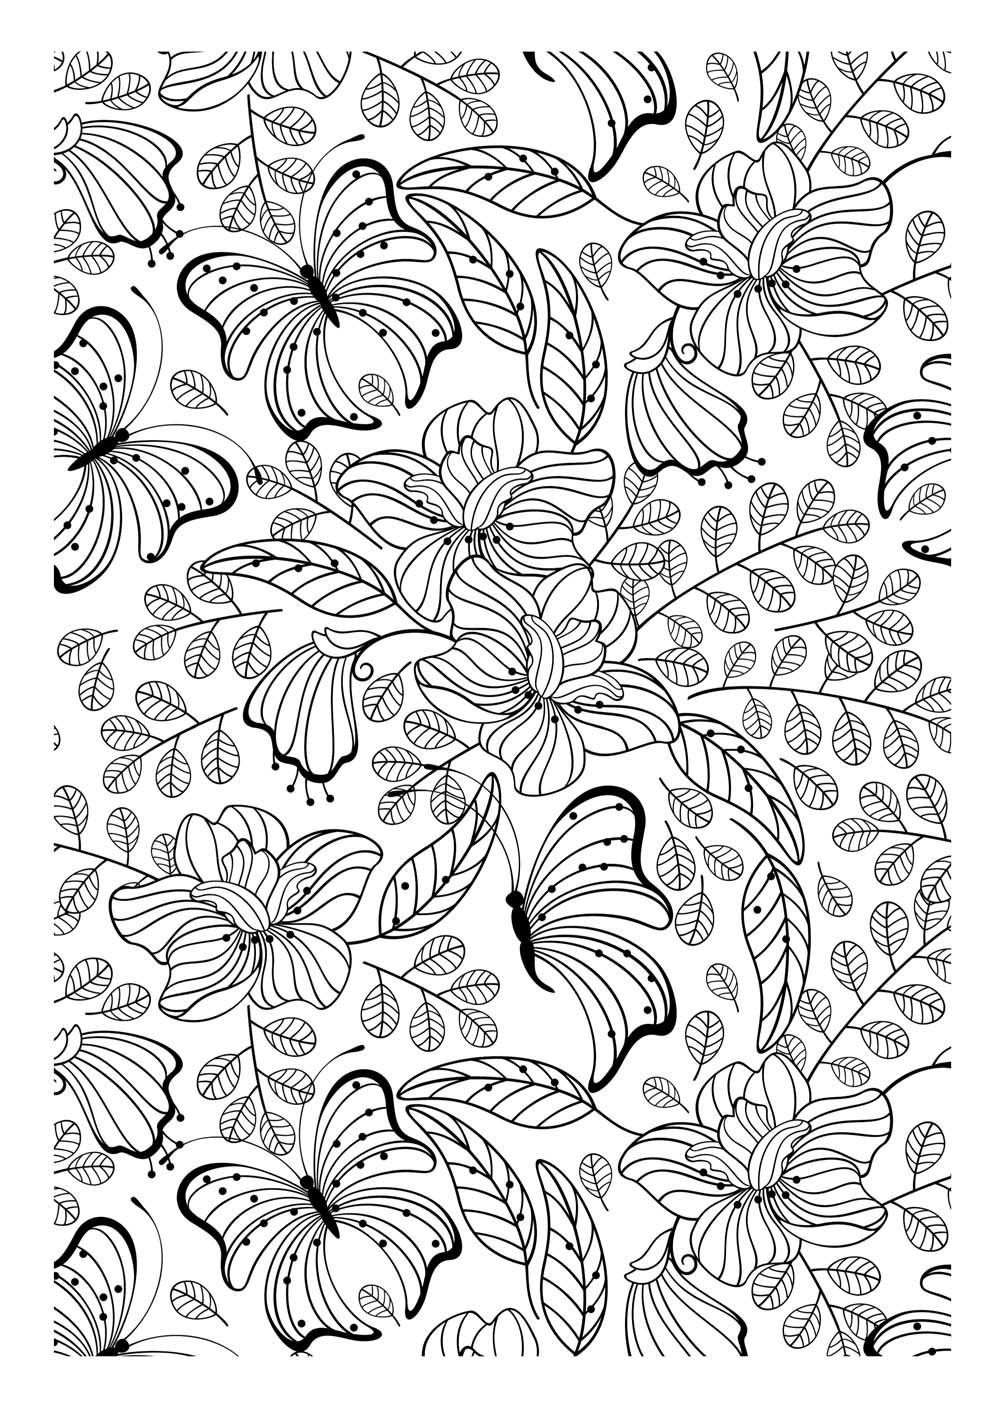 24 Digi Stamps ideas  digi stamps, colouring pages, coloring pages